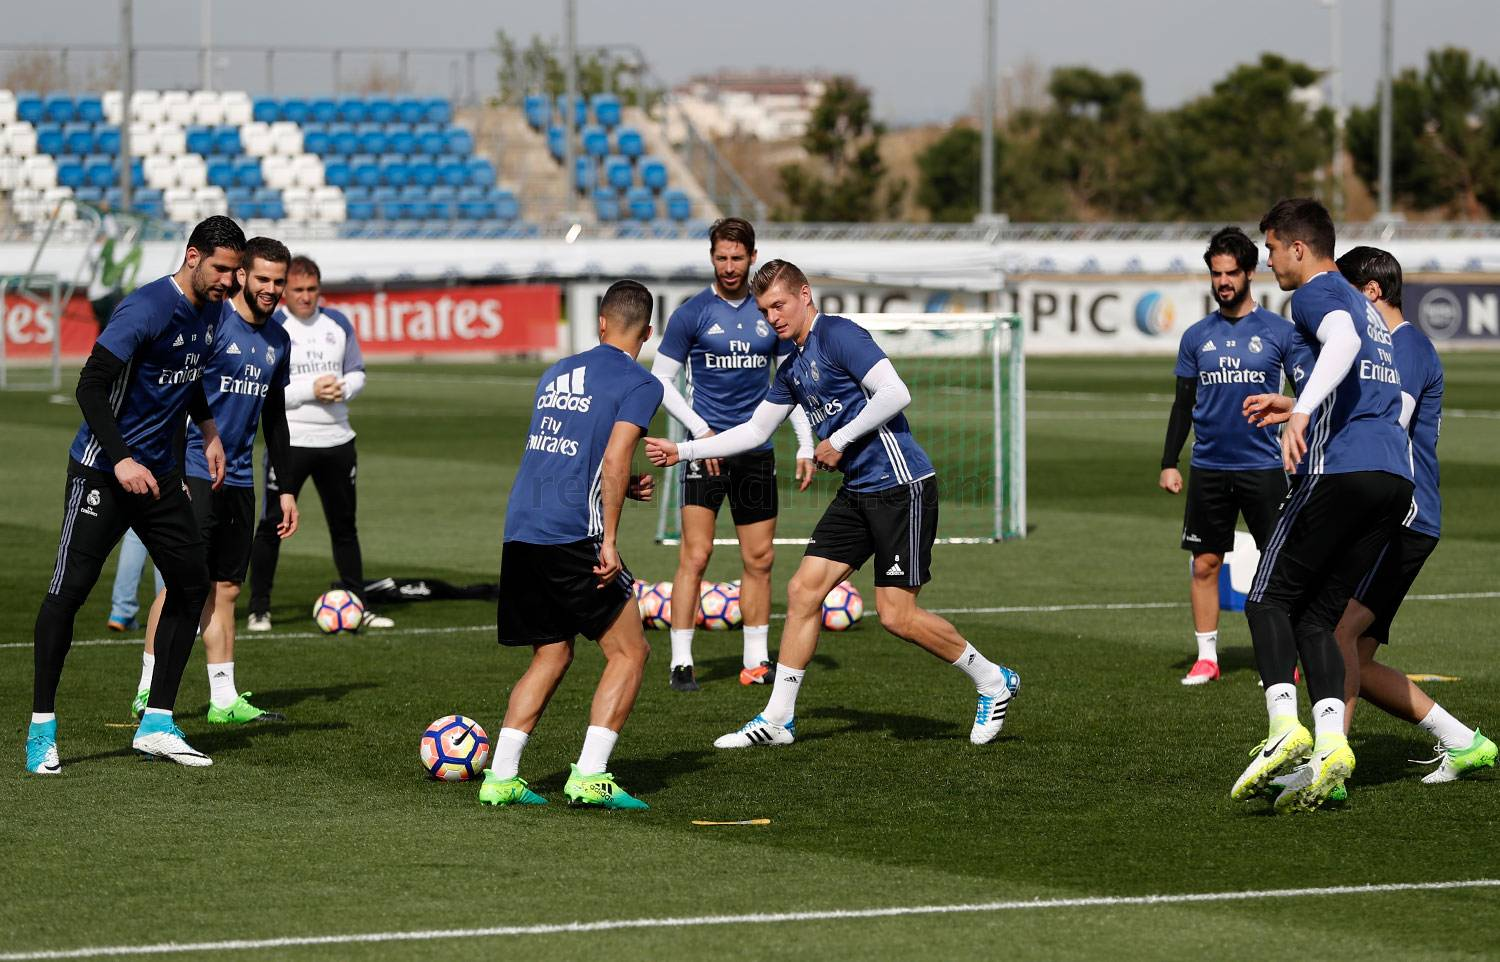 Real Madrid - Entrenamiento del Real Madrid - 30-03-2017